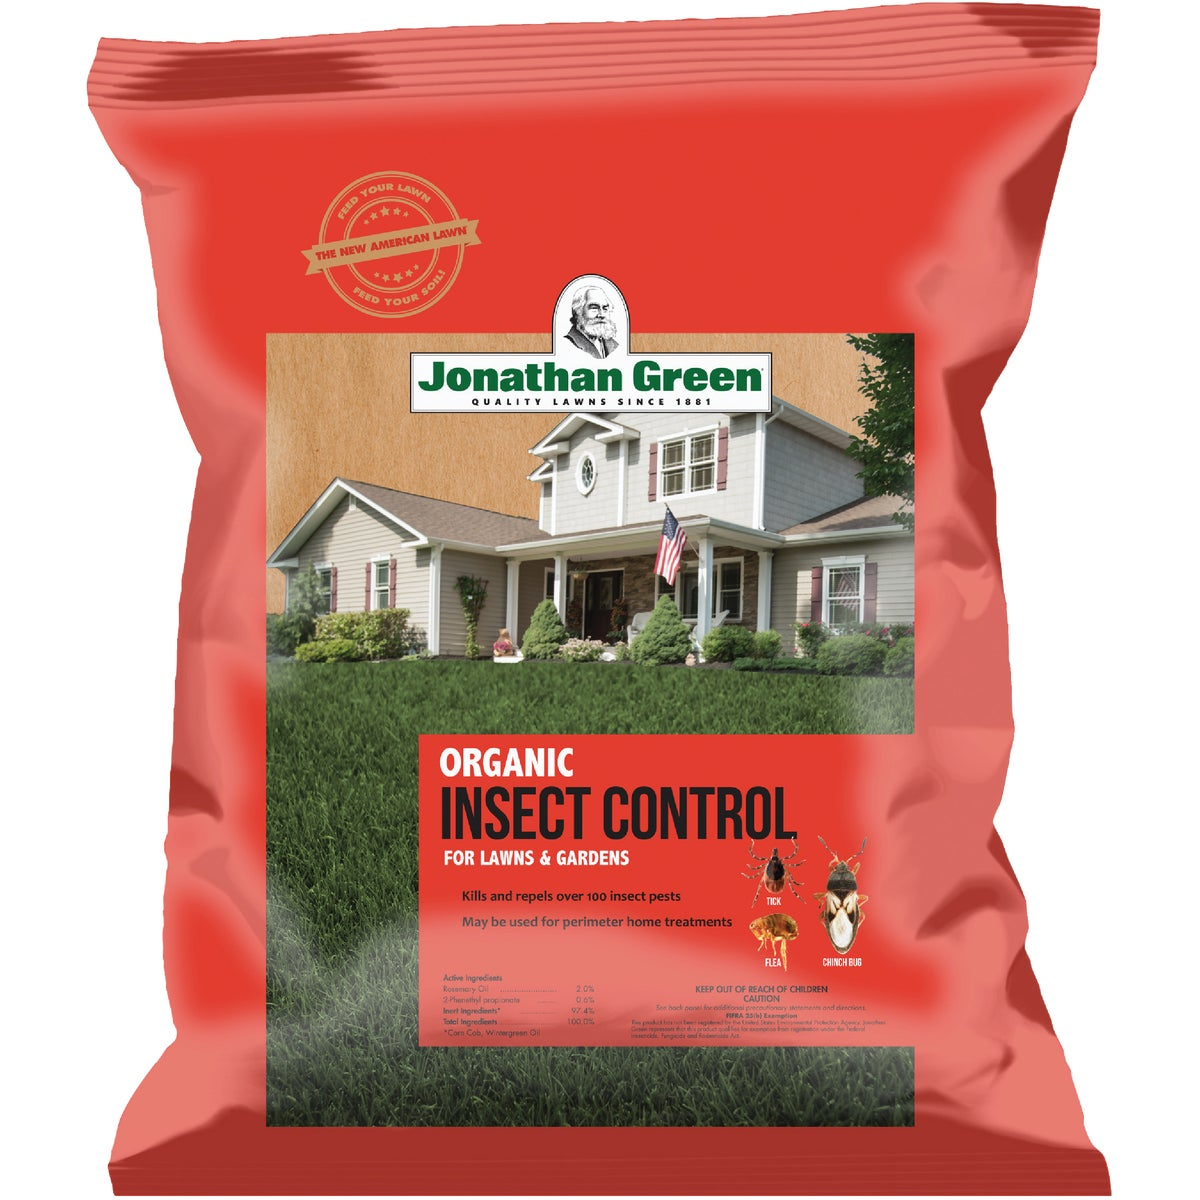 5M ORGANC INSECT CONTROL